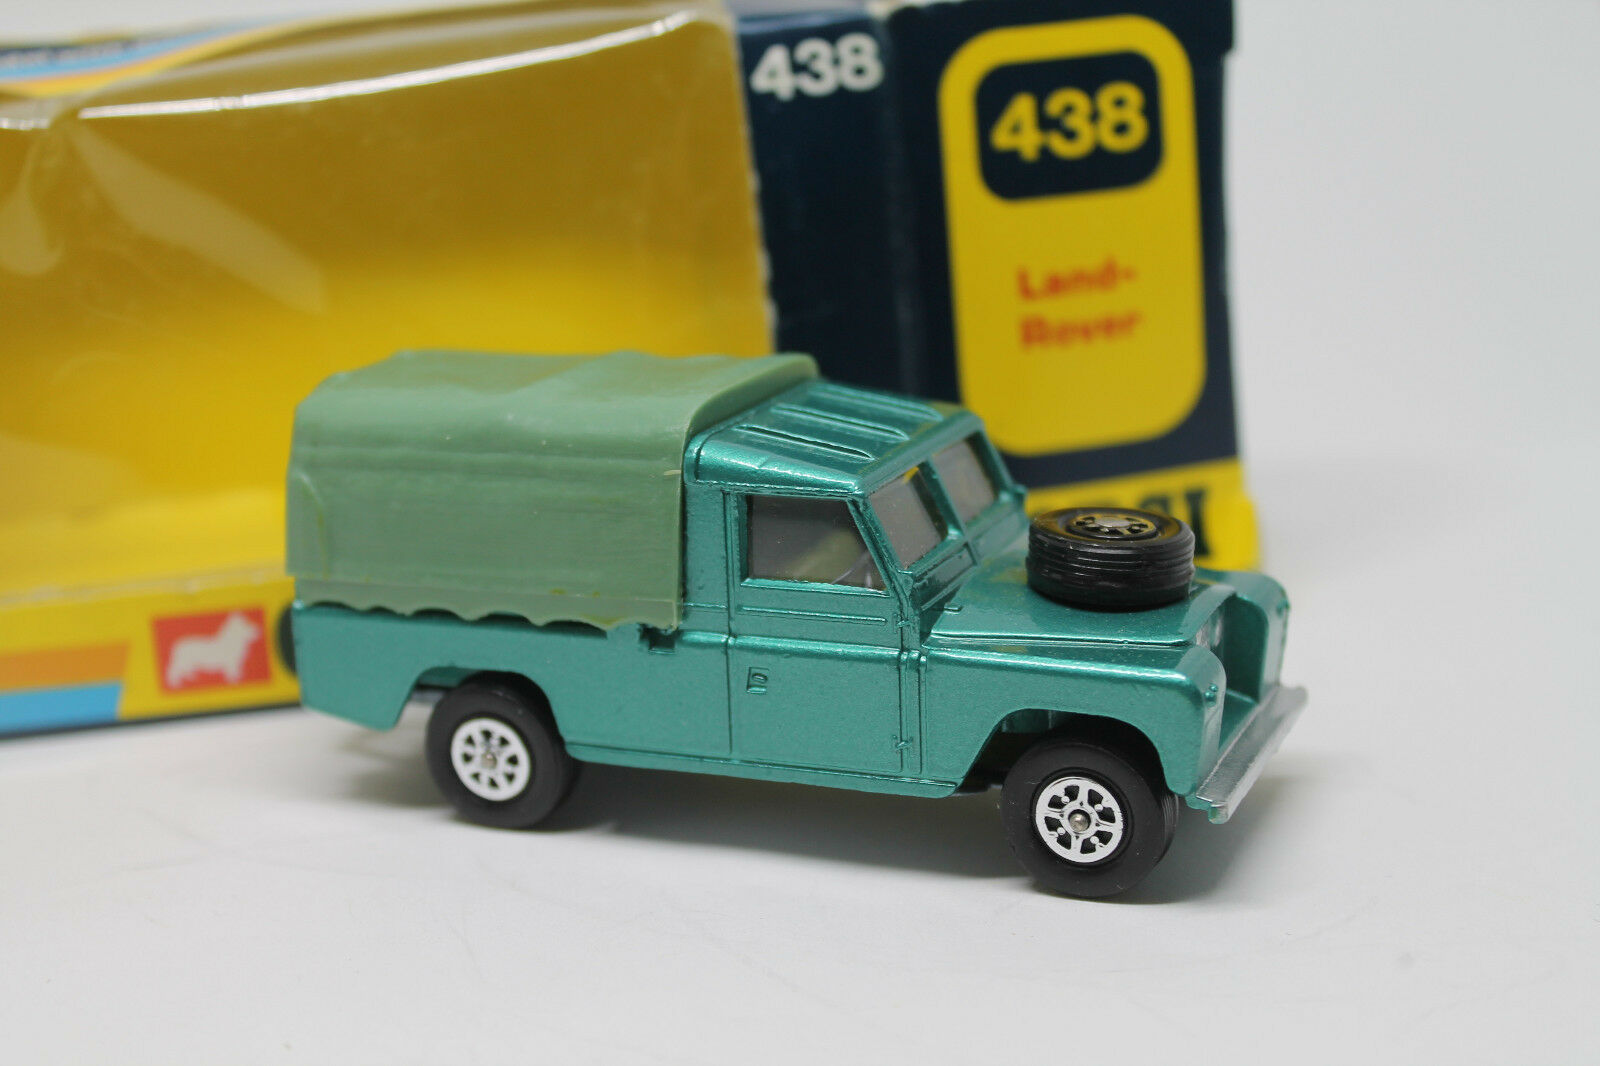 CORGI TOYS 438   LAND ROVER  1 43  ORIGINAL  OVP  TOP